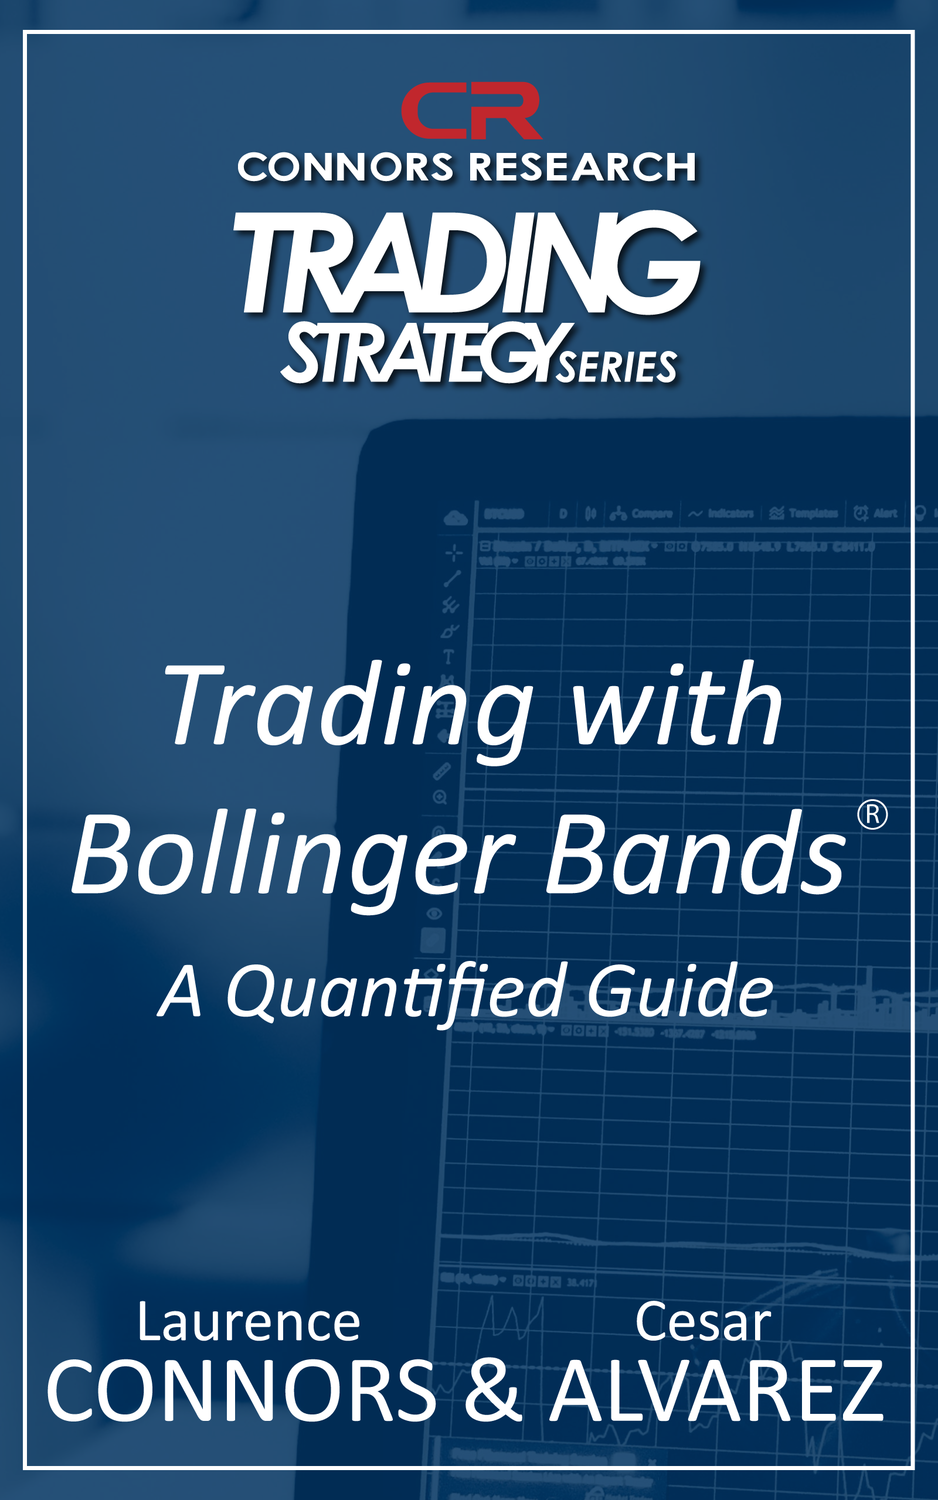 Connors Research Trading Strategy Series: Trading with Bollinger Bands -- A Quantified Guide